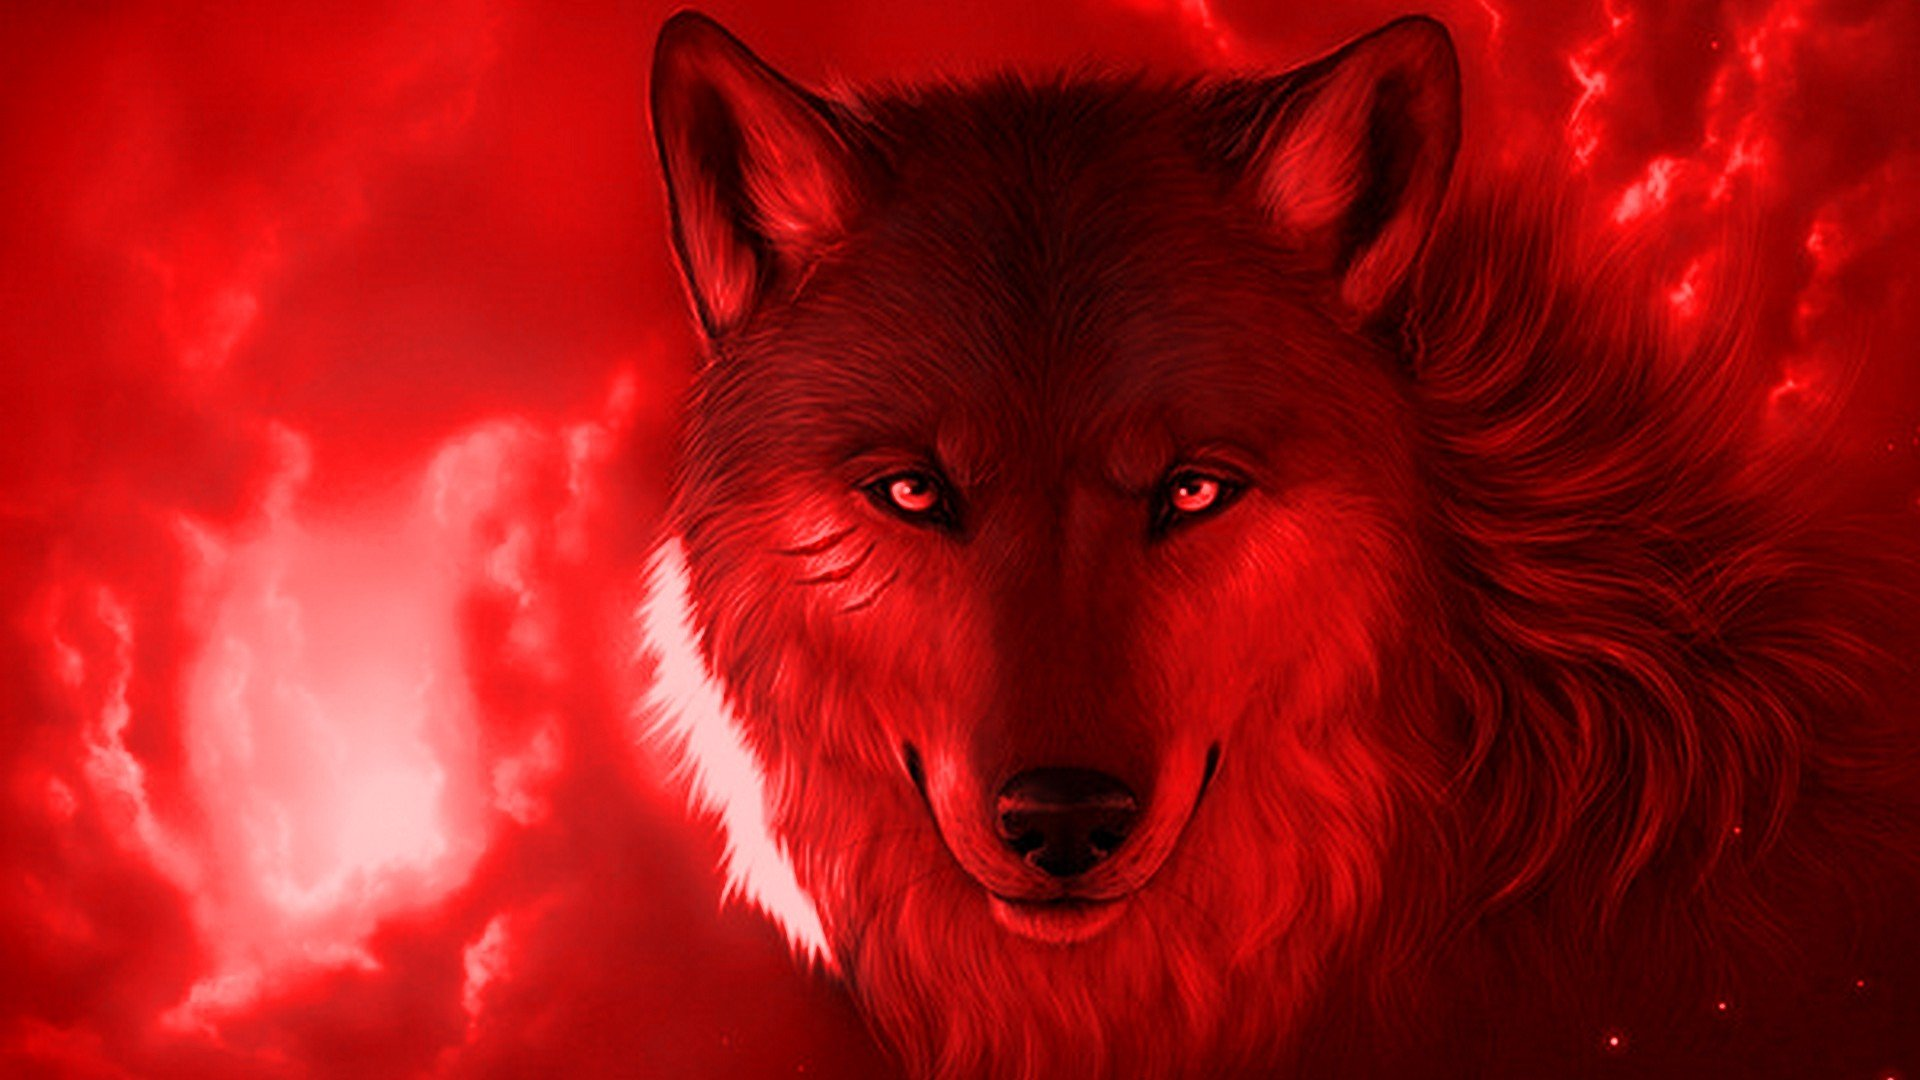 Live Wallpaper HD Wallpapers Computer Cool Wolf 1920x1080